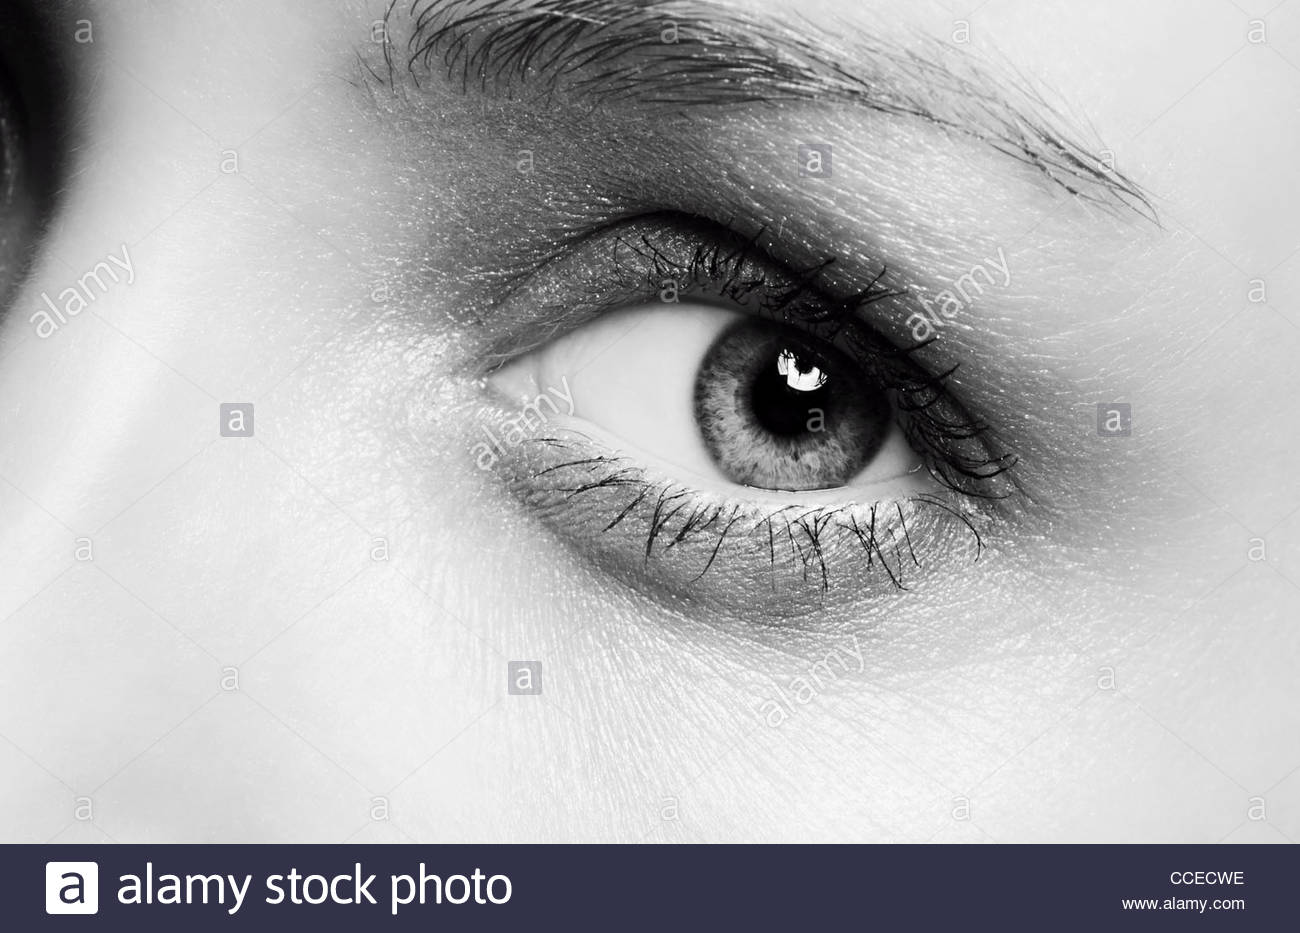 Eye - Stock Image